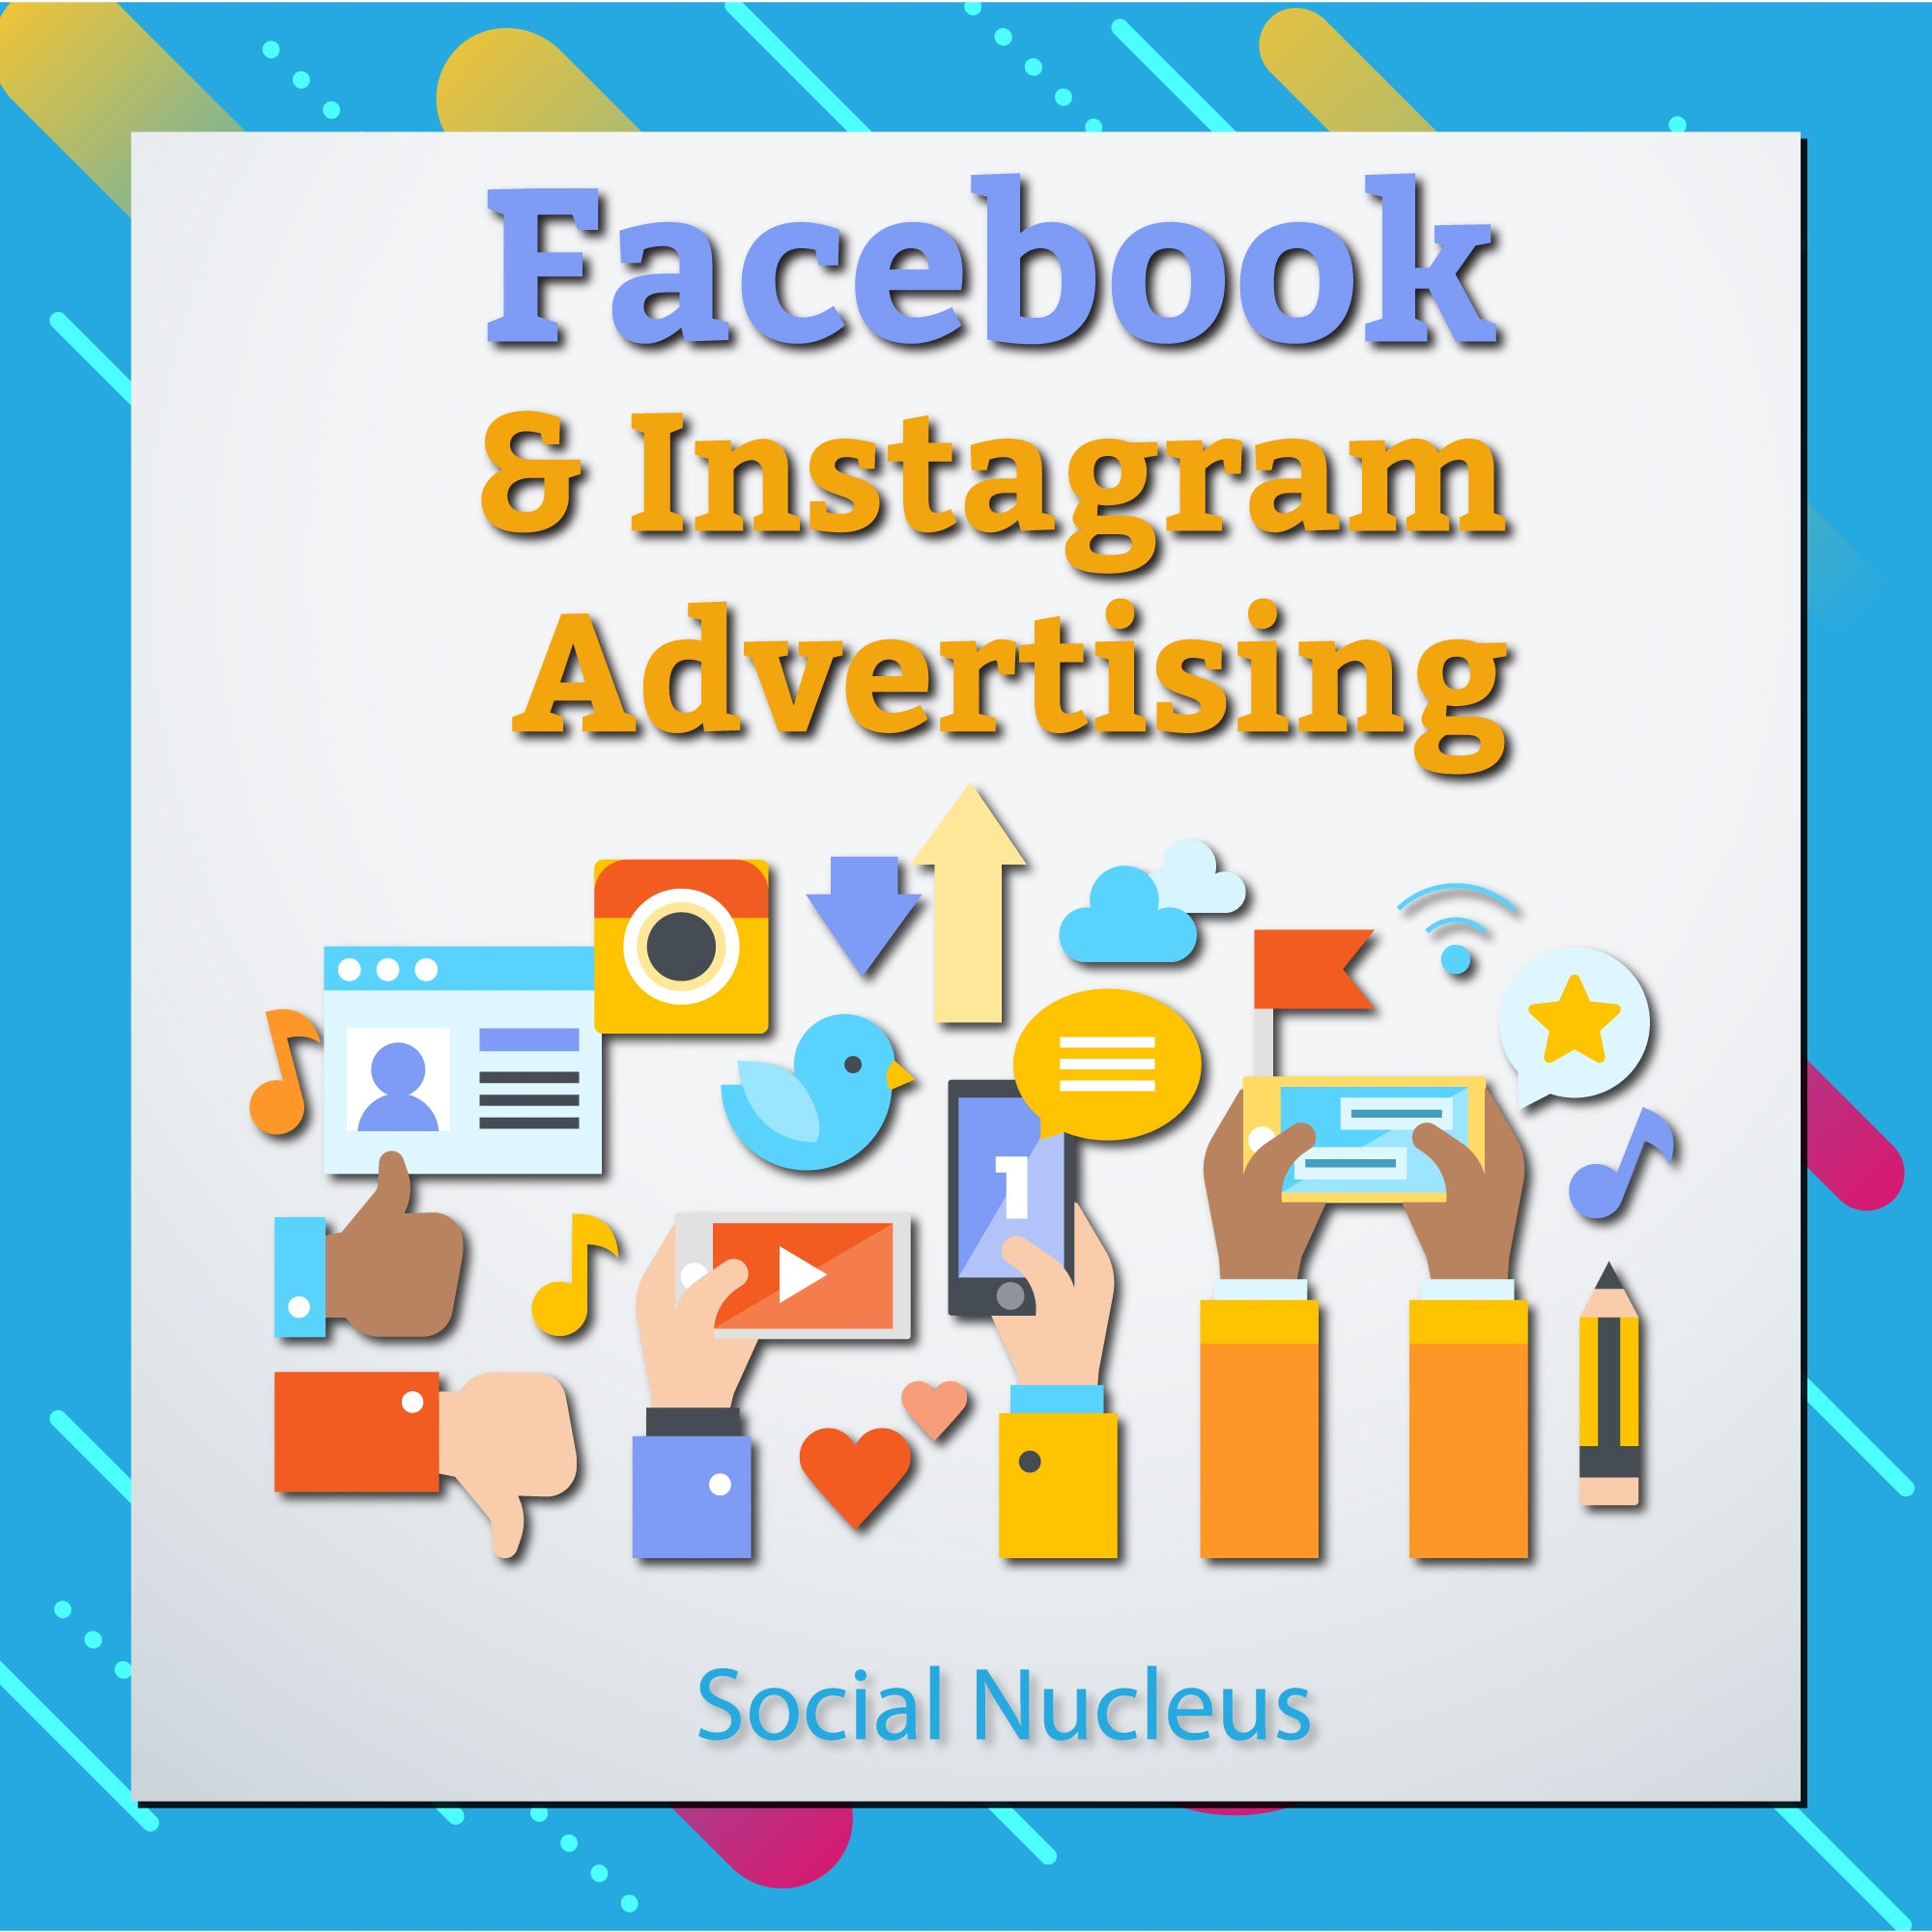 Facebook & Instagram Advertising Hidden